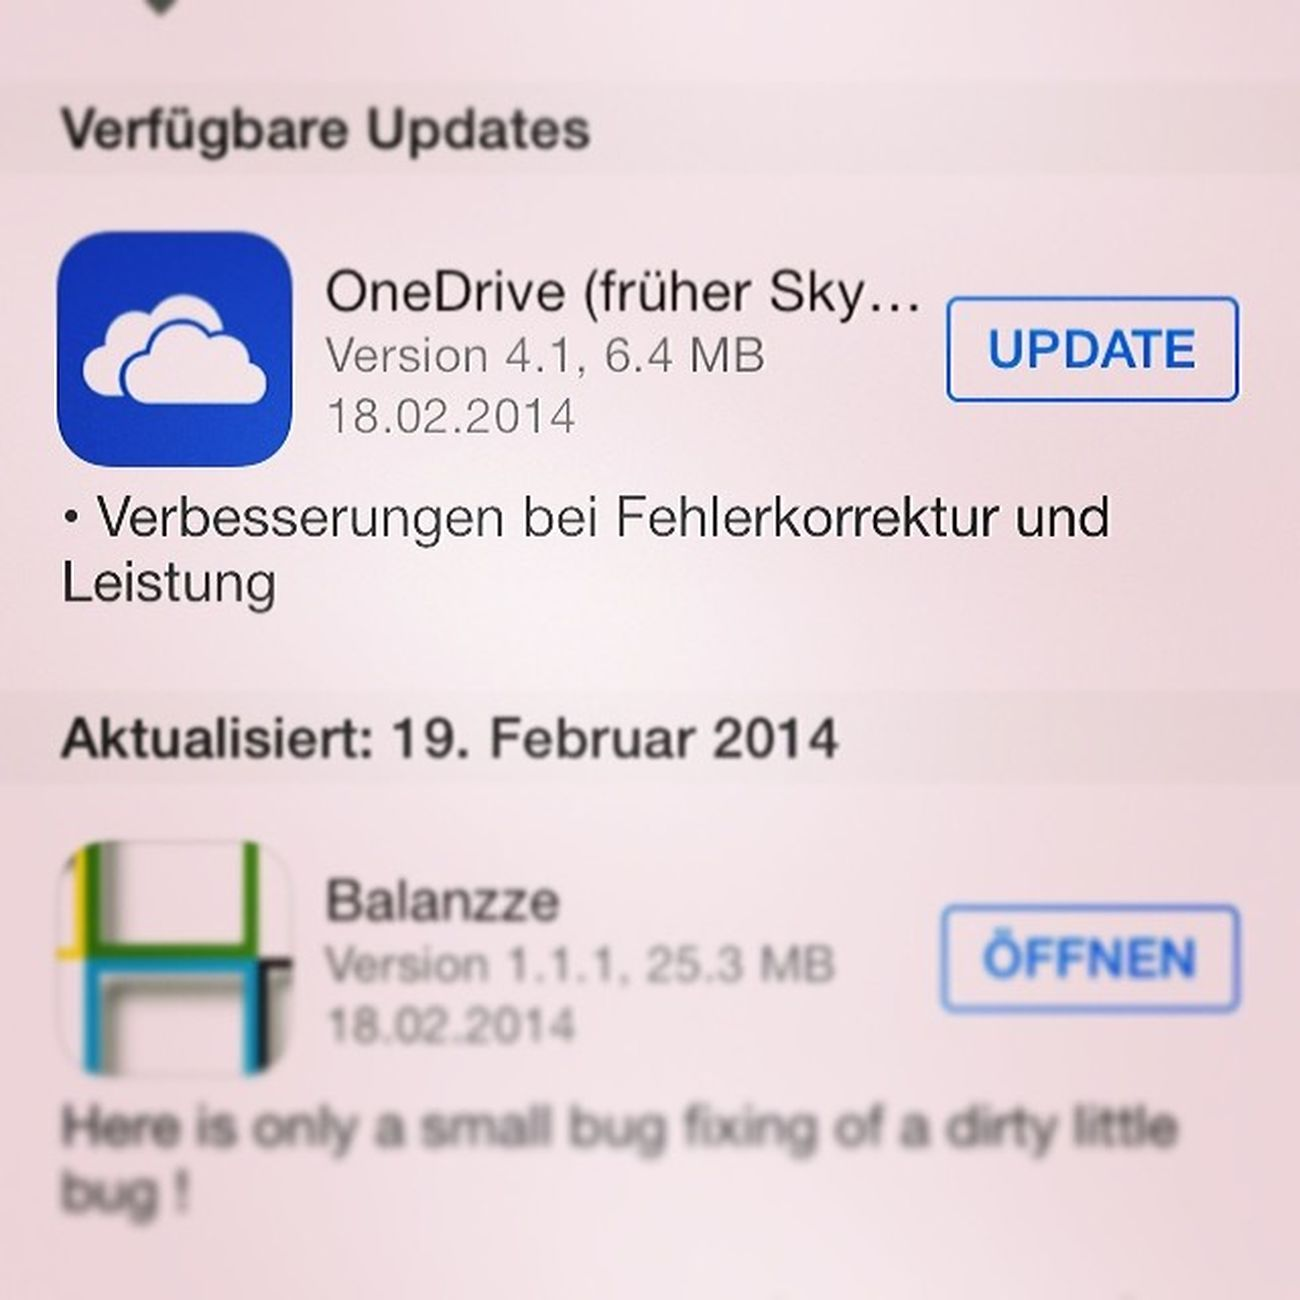 YEAH! Mein #OneDrive ist angekommen #iLike danke Microsoft_CH #App #iOS #Android #WindowsPhone Android Ilike Ios App Windowsphone Onedrive